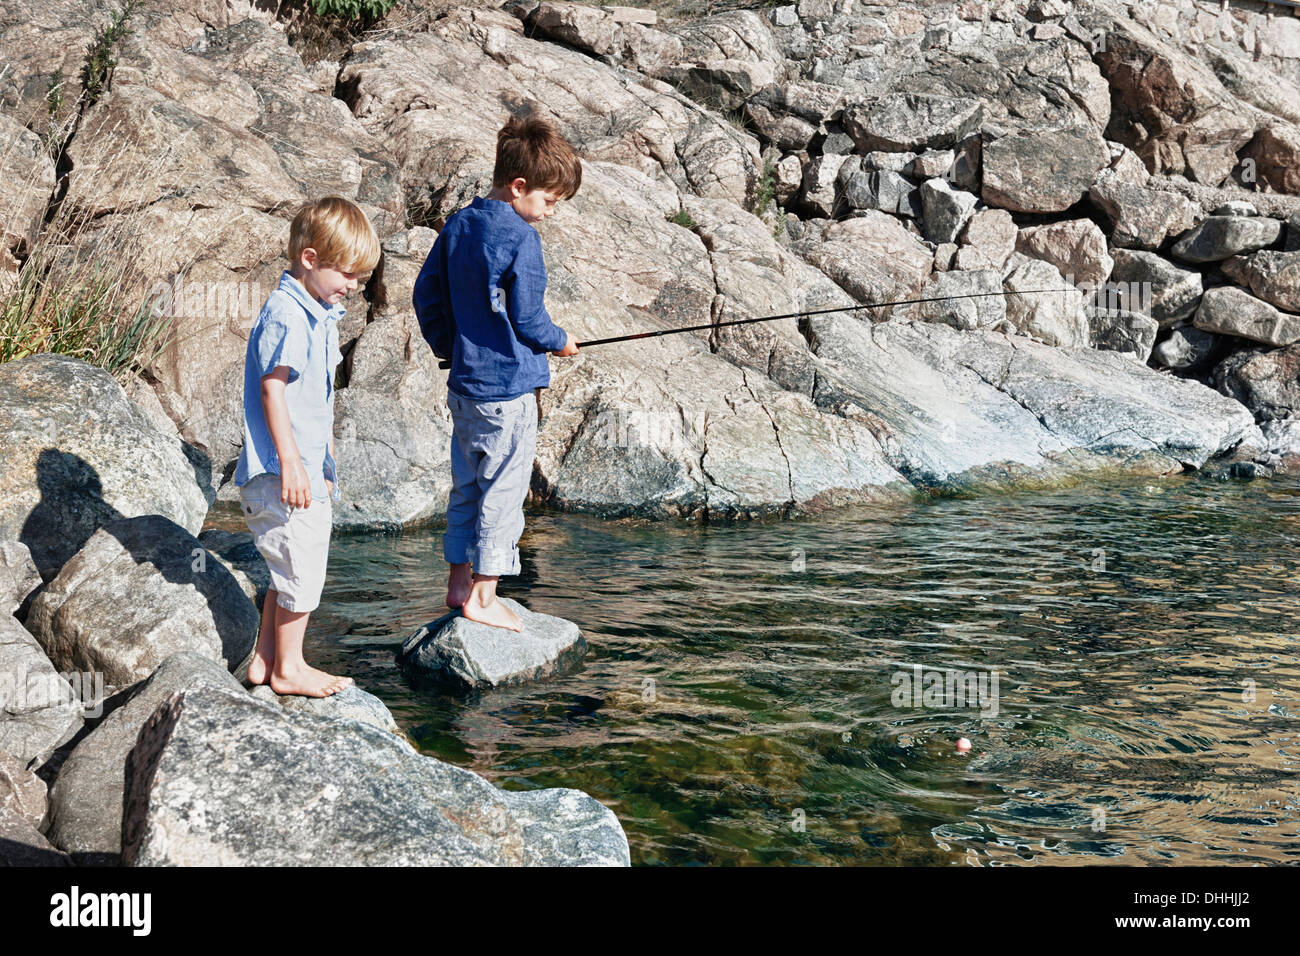 Two boys standing on rocks fishing, Utvalnas, Sweden - Stock Image